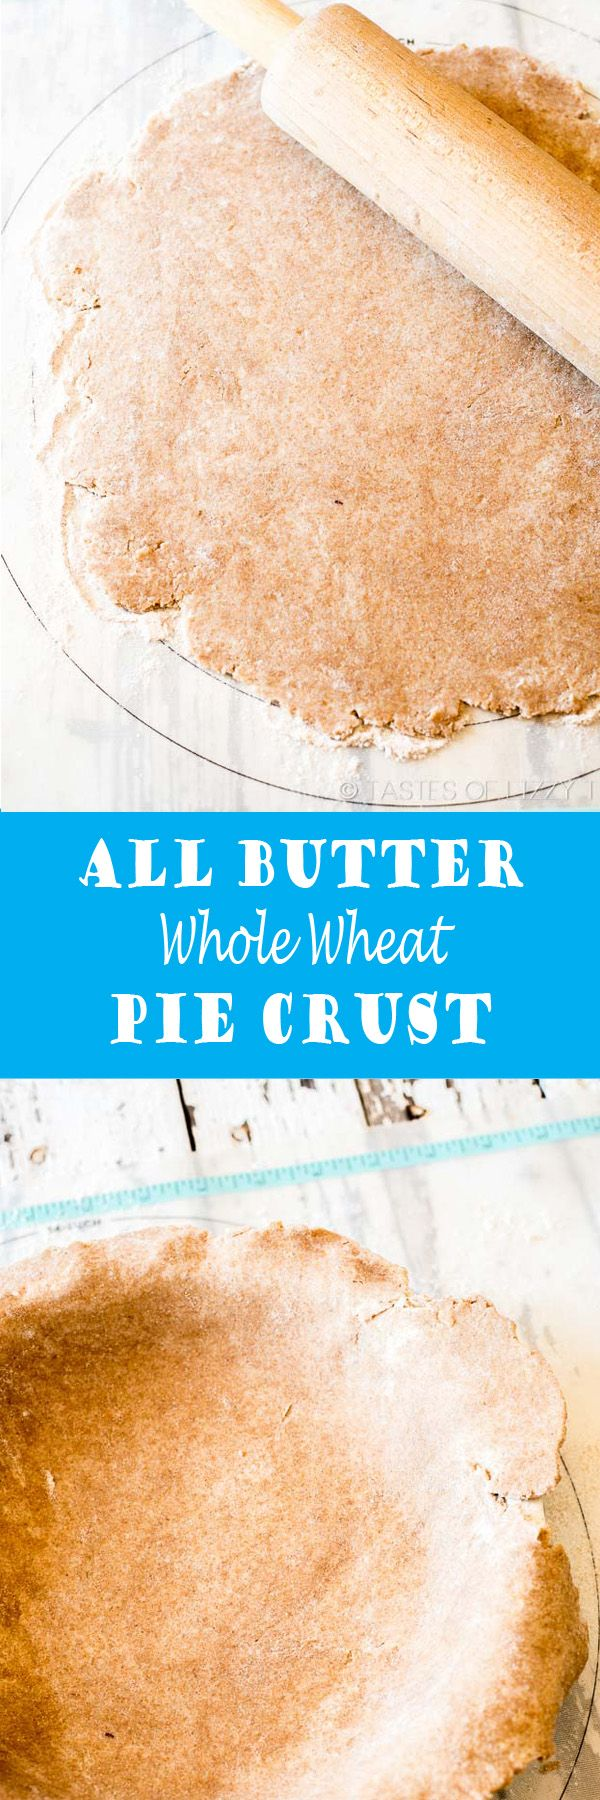 Wheat flour and wheat germ keep this All Butter Whole Wheat Pie Crust full of healthy whole grains. Read about our tricks for a healthier, flaky pie crust.